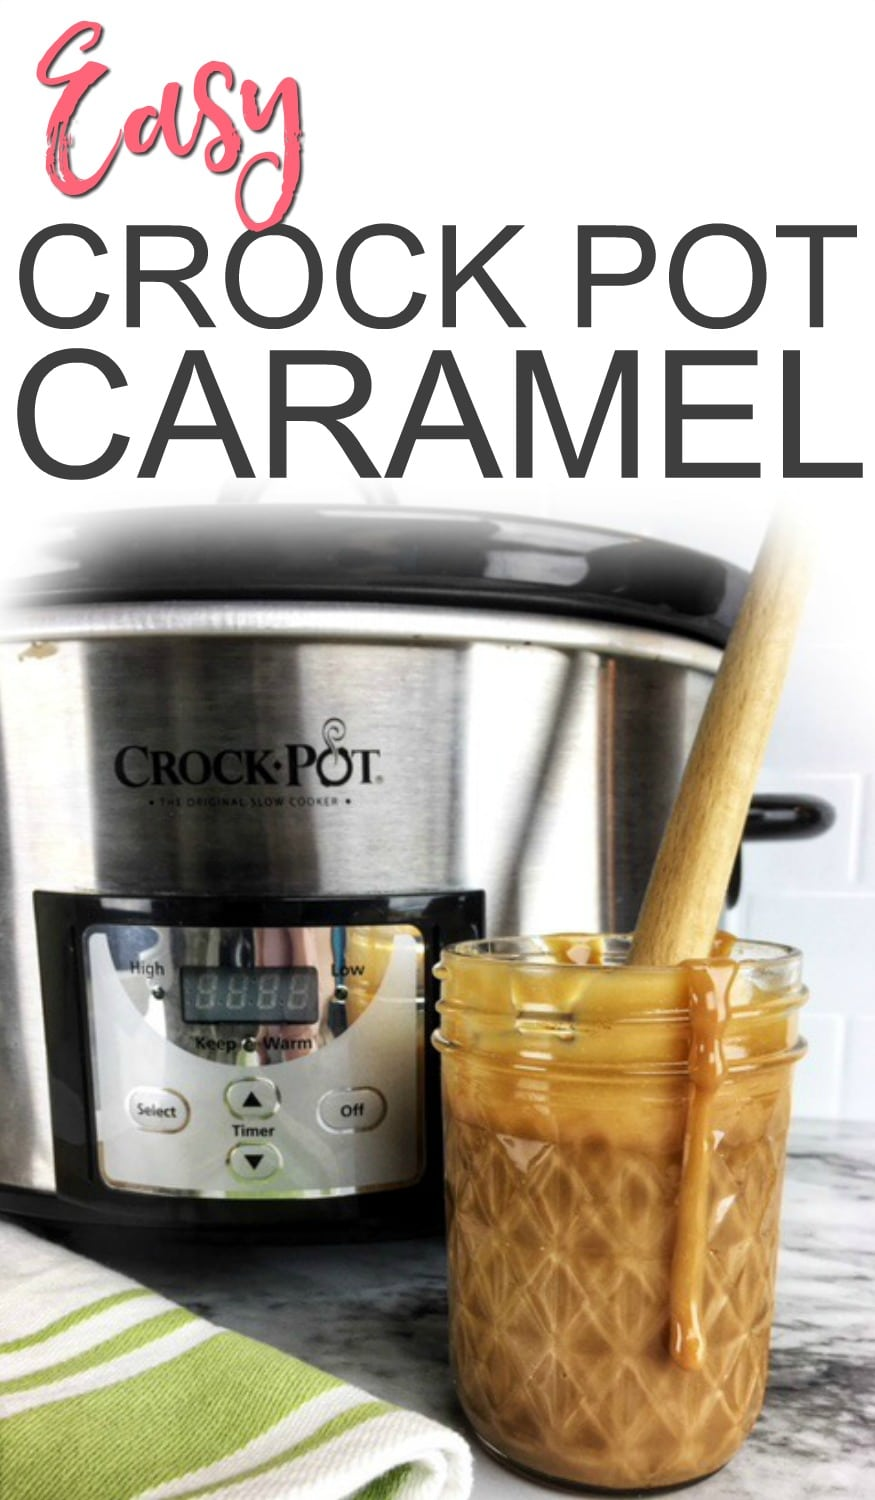 Want a new caramel dip? Try this easy-peasy crock pot caramel sauce. It tastes amazing and only needs one ingredient. #slow cooker #crock pot